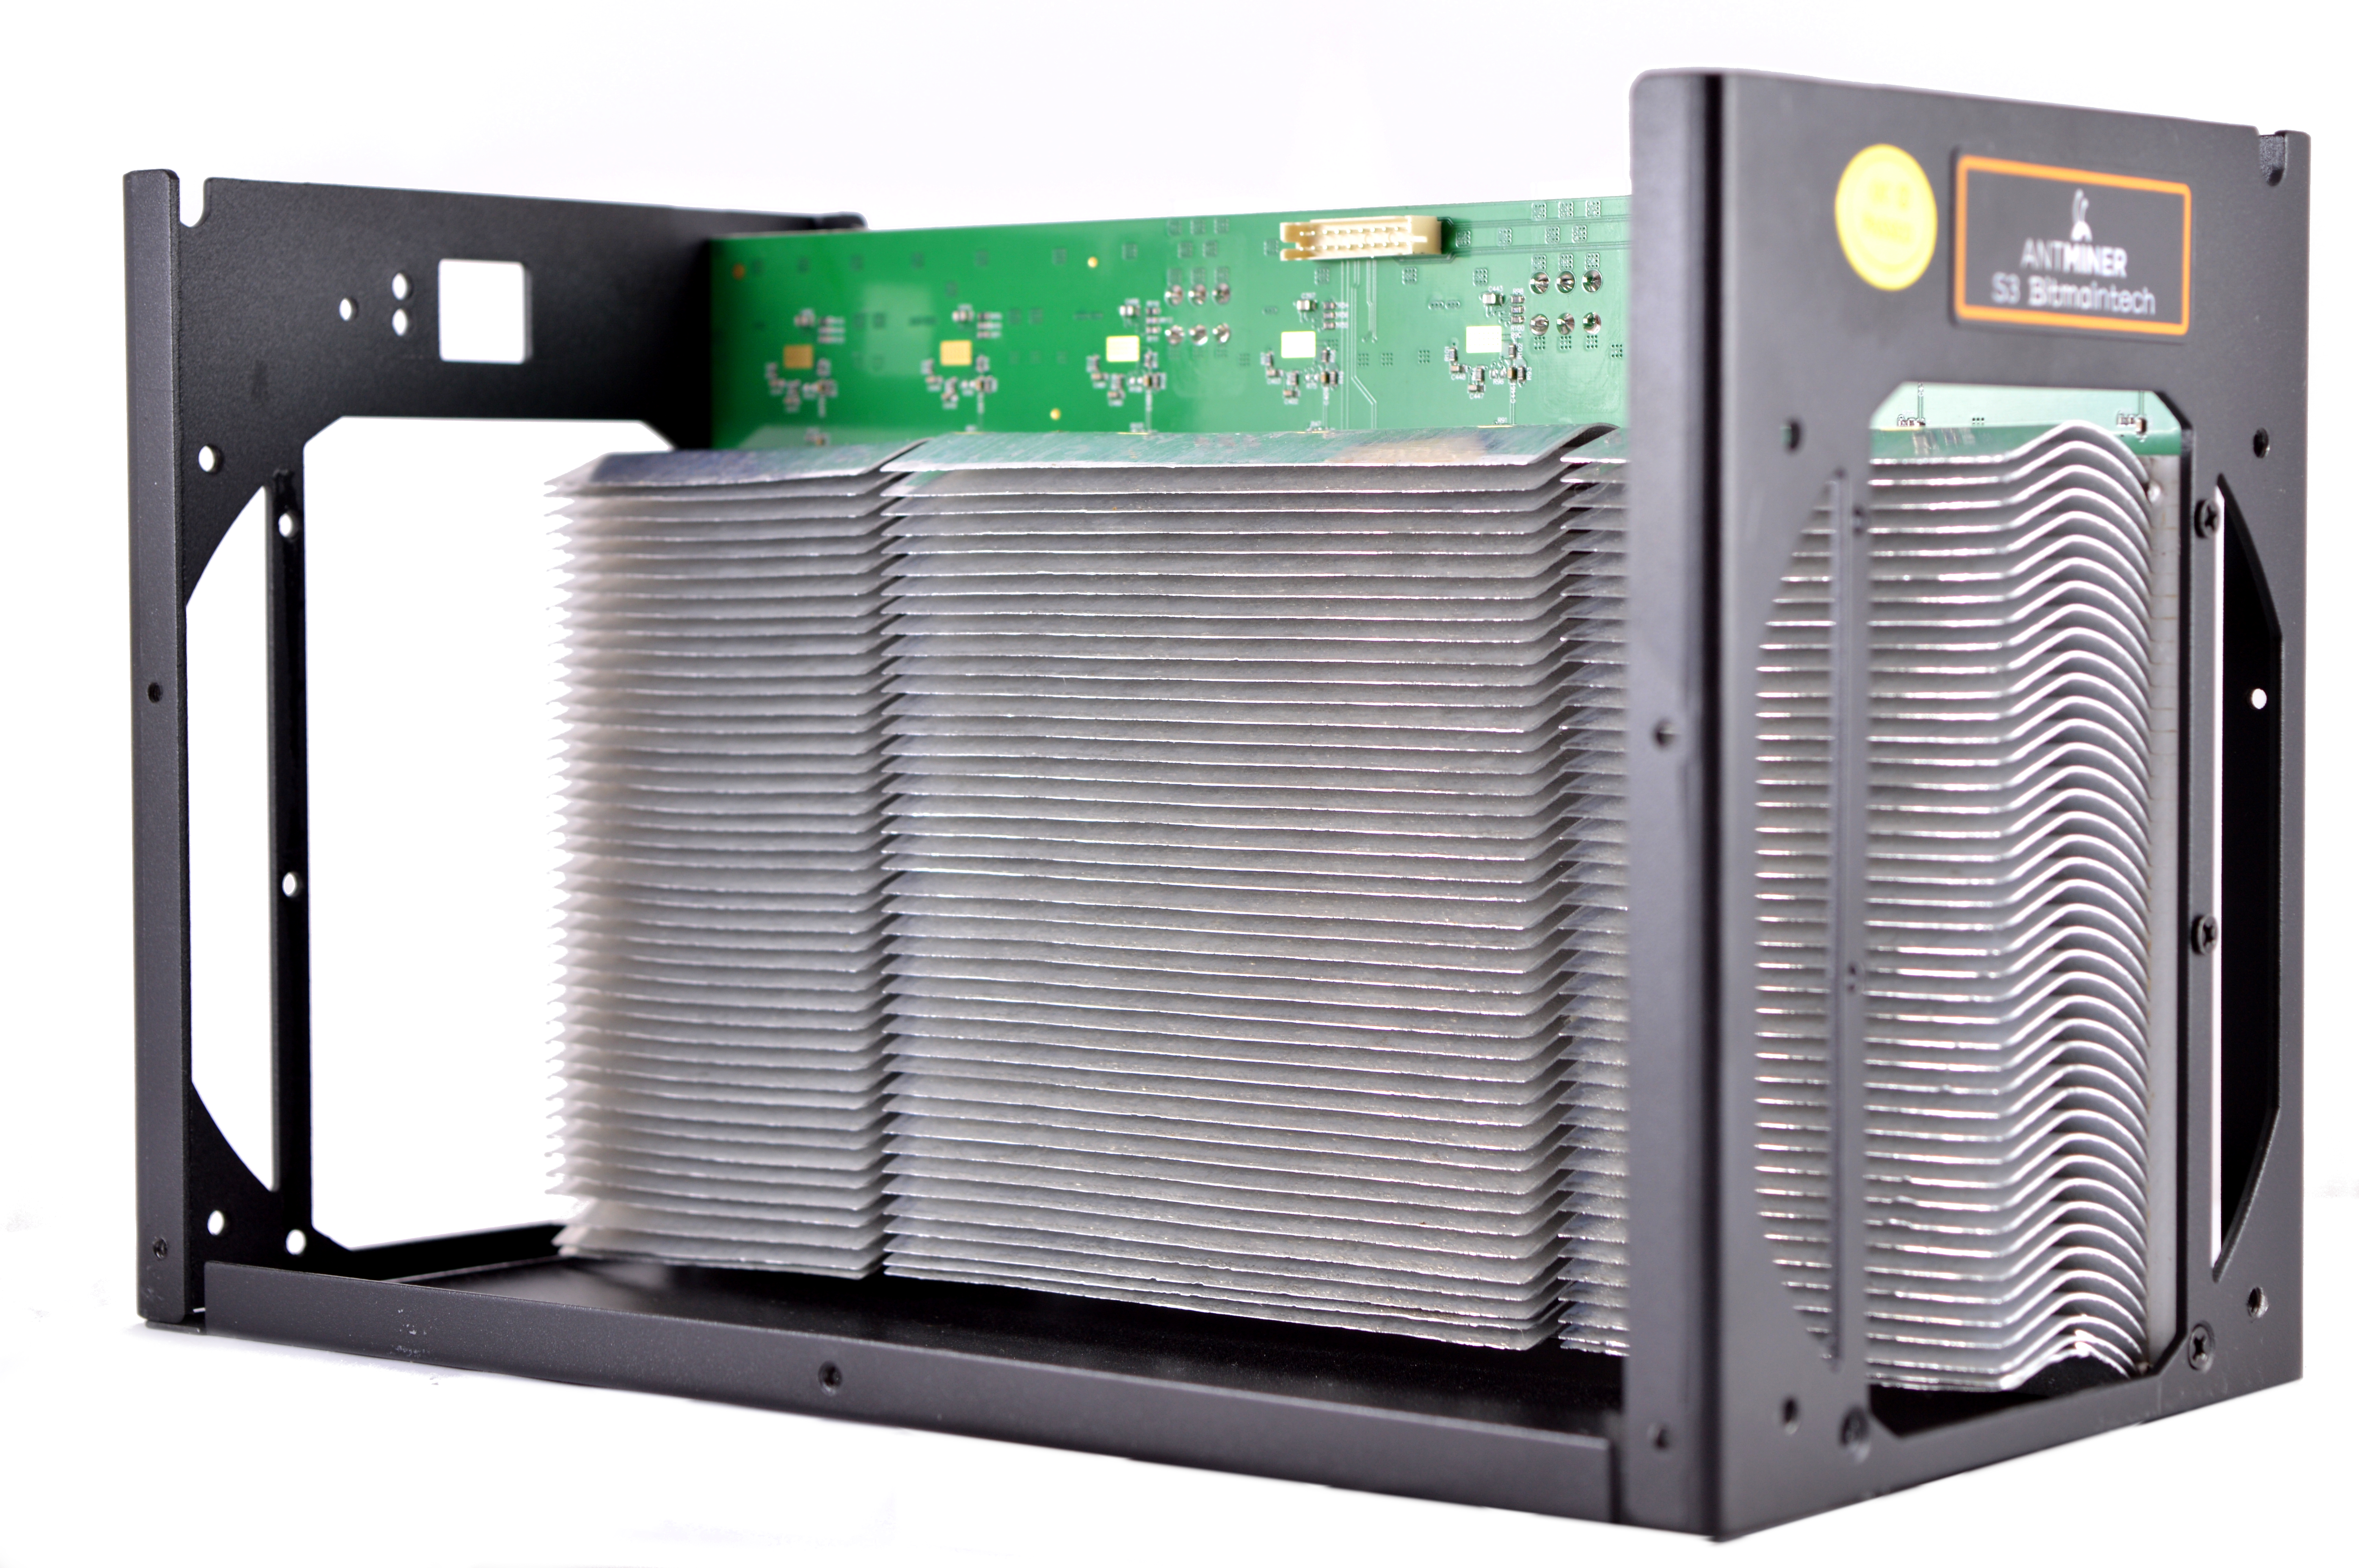 Antminer setup guide / Quote for growth